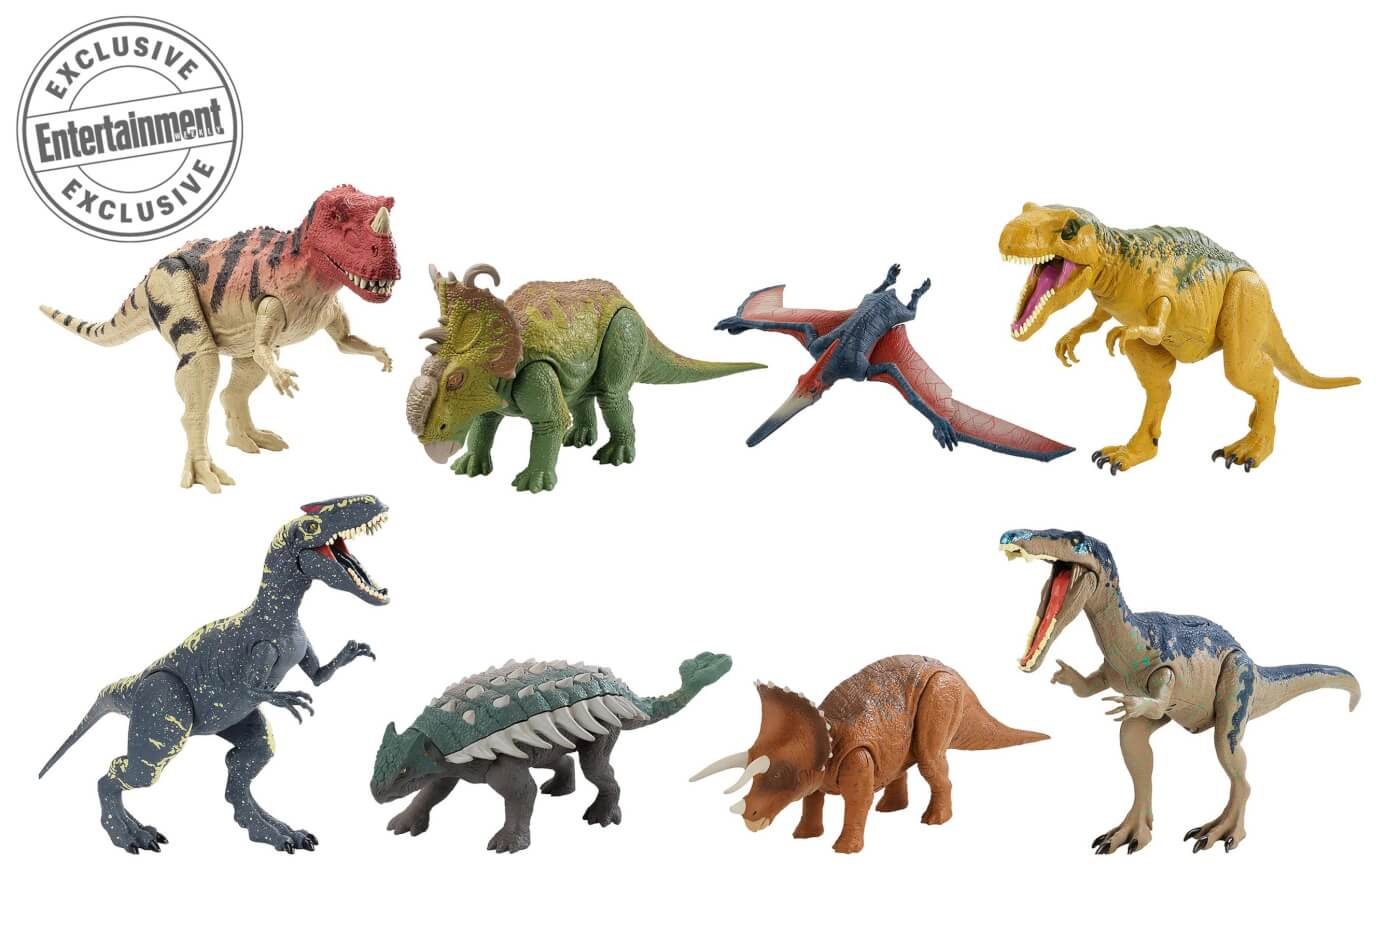 Entertainment Weekly Releases Exclusive Preview of Mattel's Fallen Kingdom Merch!